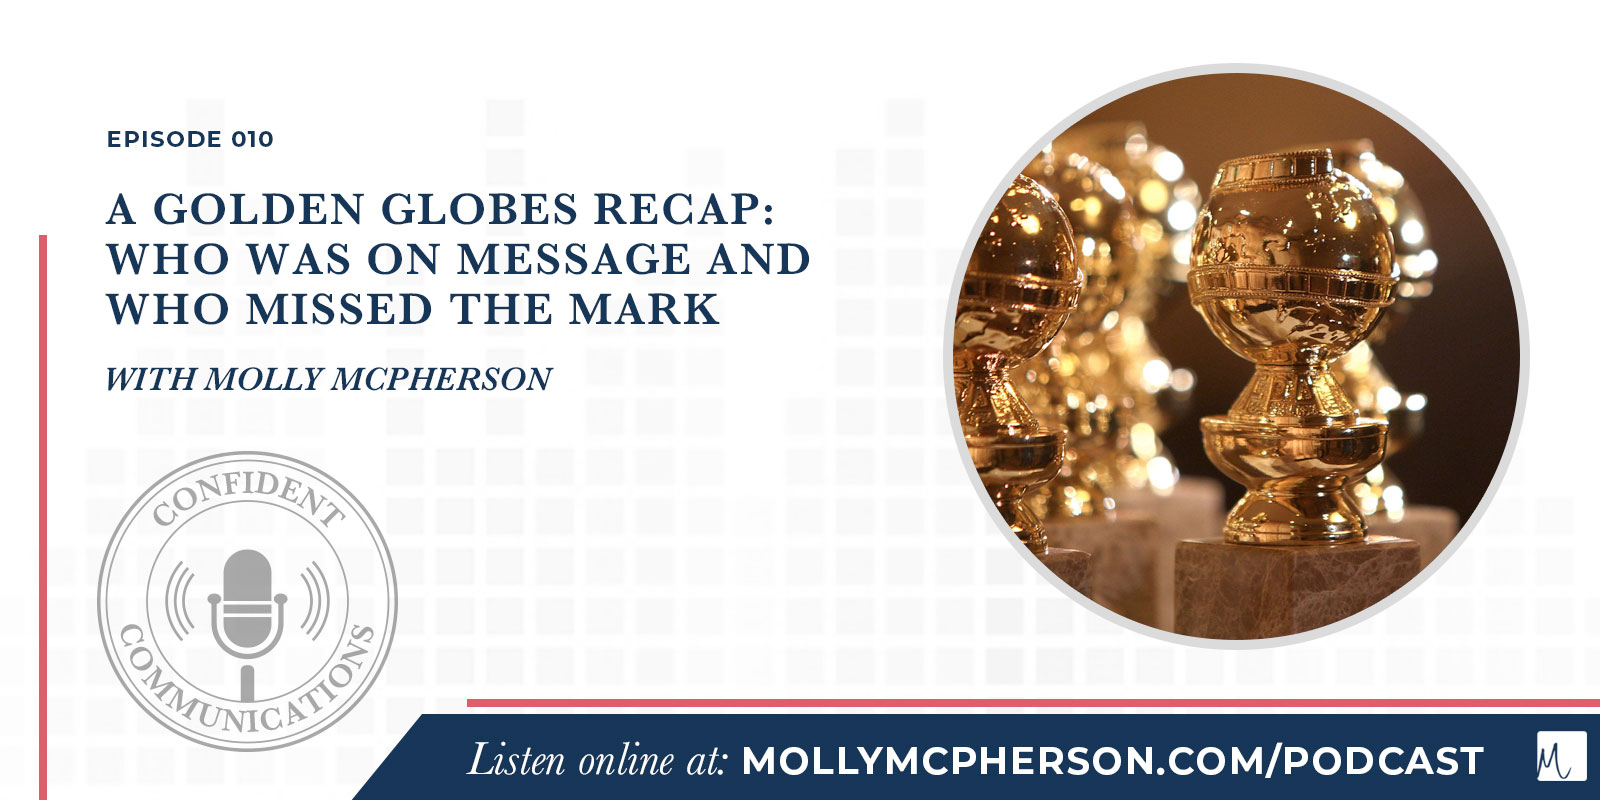 A Golden Globes Recap: Who was on message and who missed the mark